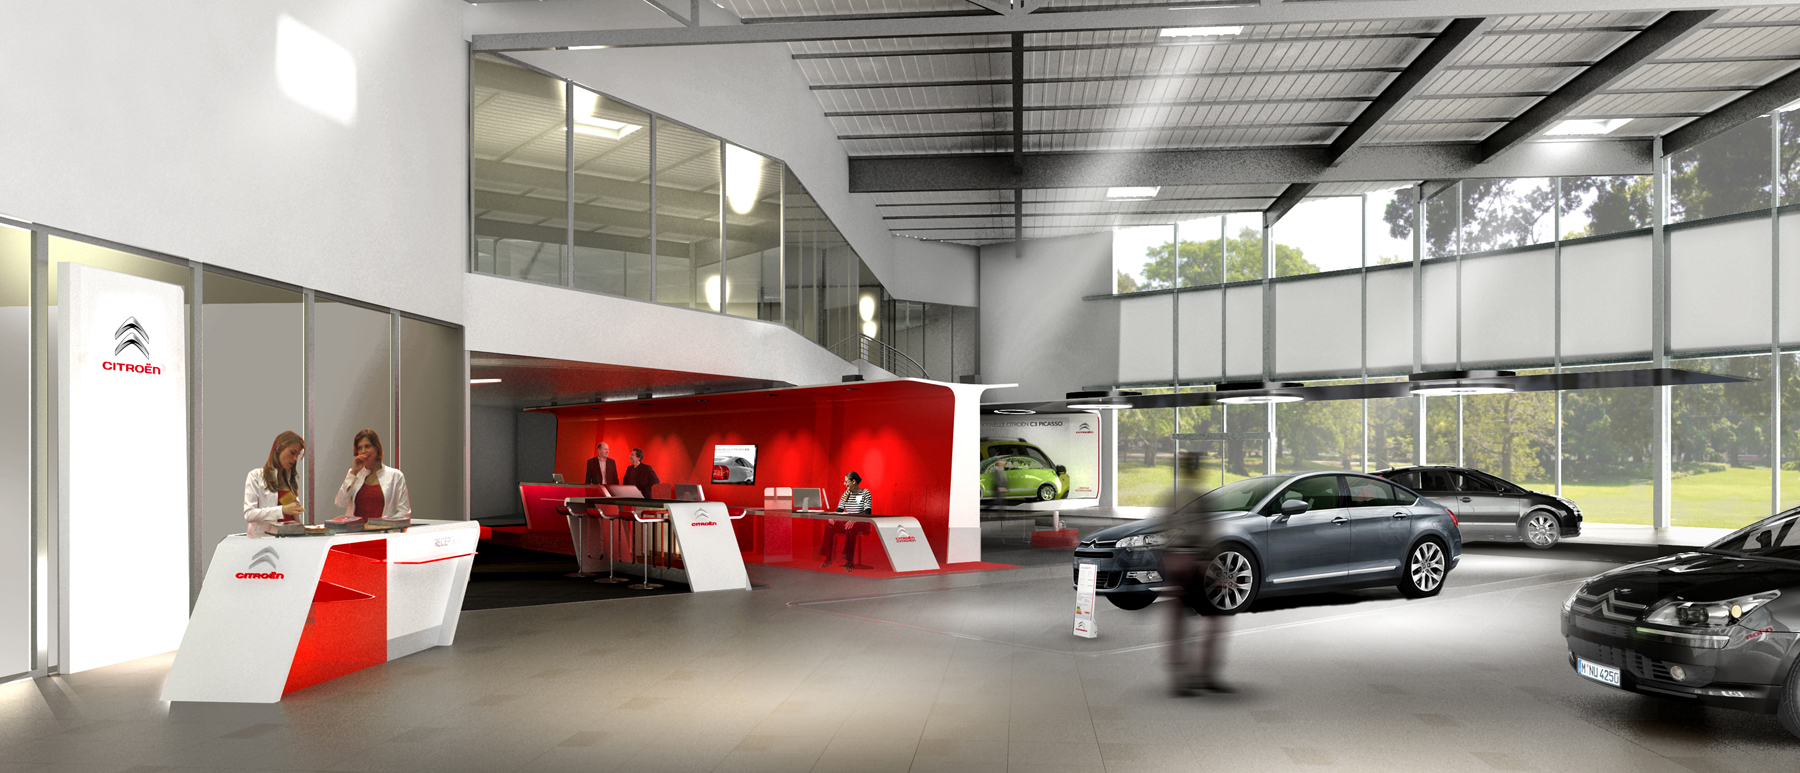 INTERSENS - Landor Associates - Citroen St Quentin